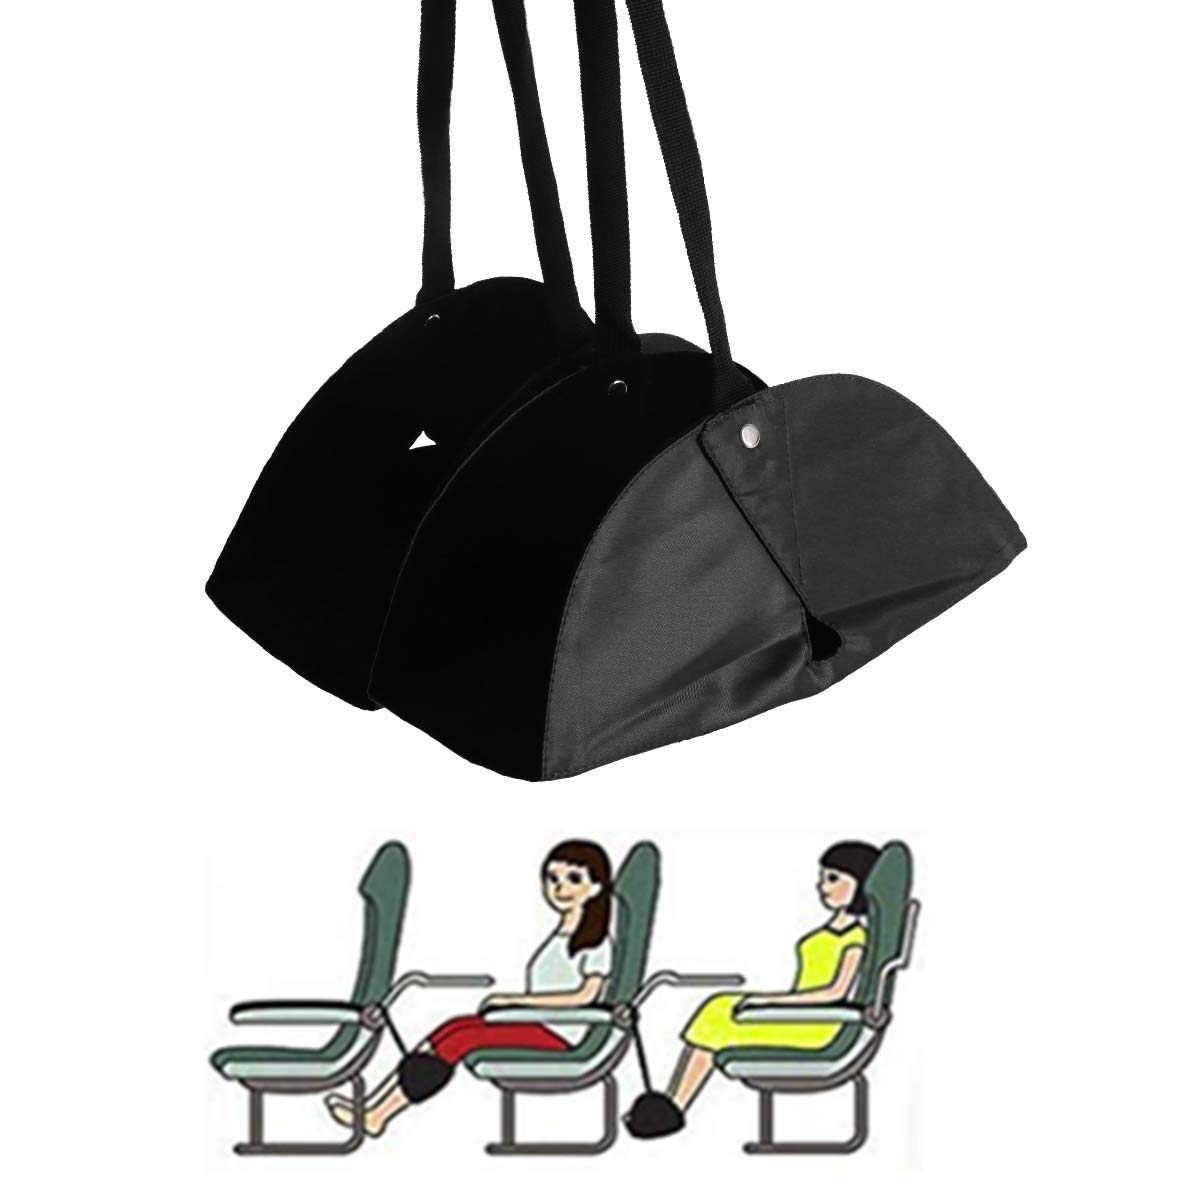 Airplane Foot Rest Hammock, Yigou Portable Travel Accessories Adjustable Height with Separate Footrest Design for Flight Relaxation and Comfort, Black